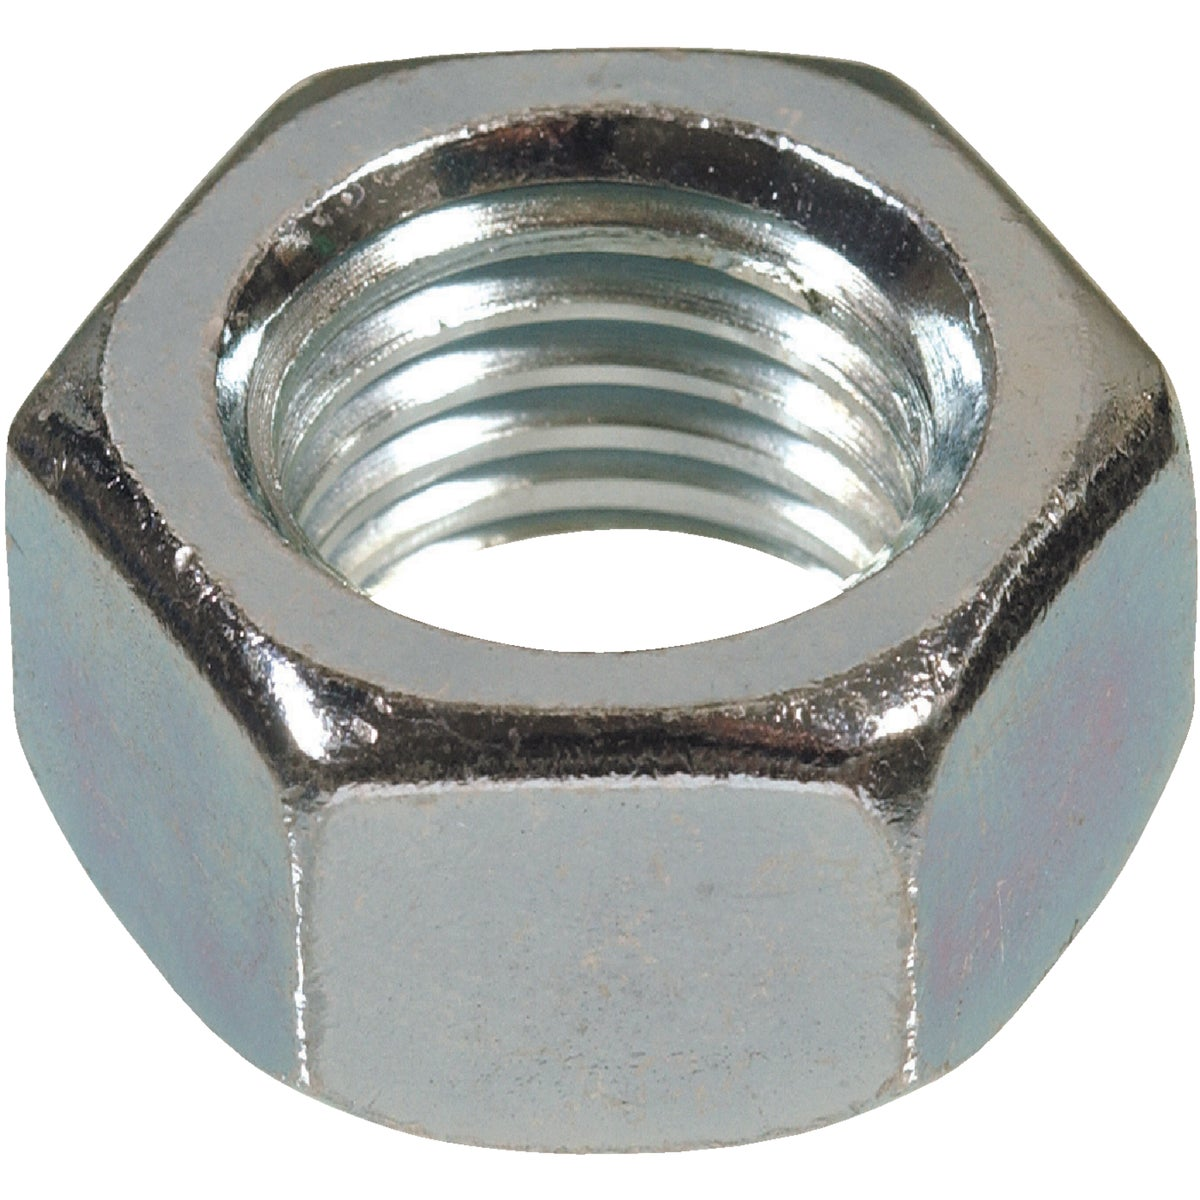 1-8 C THREAD HEX NUT - 150030 by Hillman Fastener